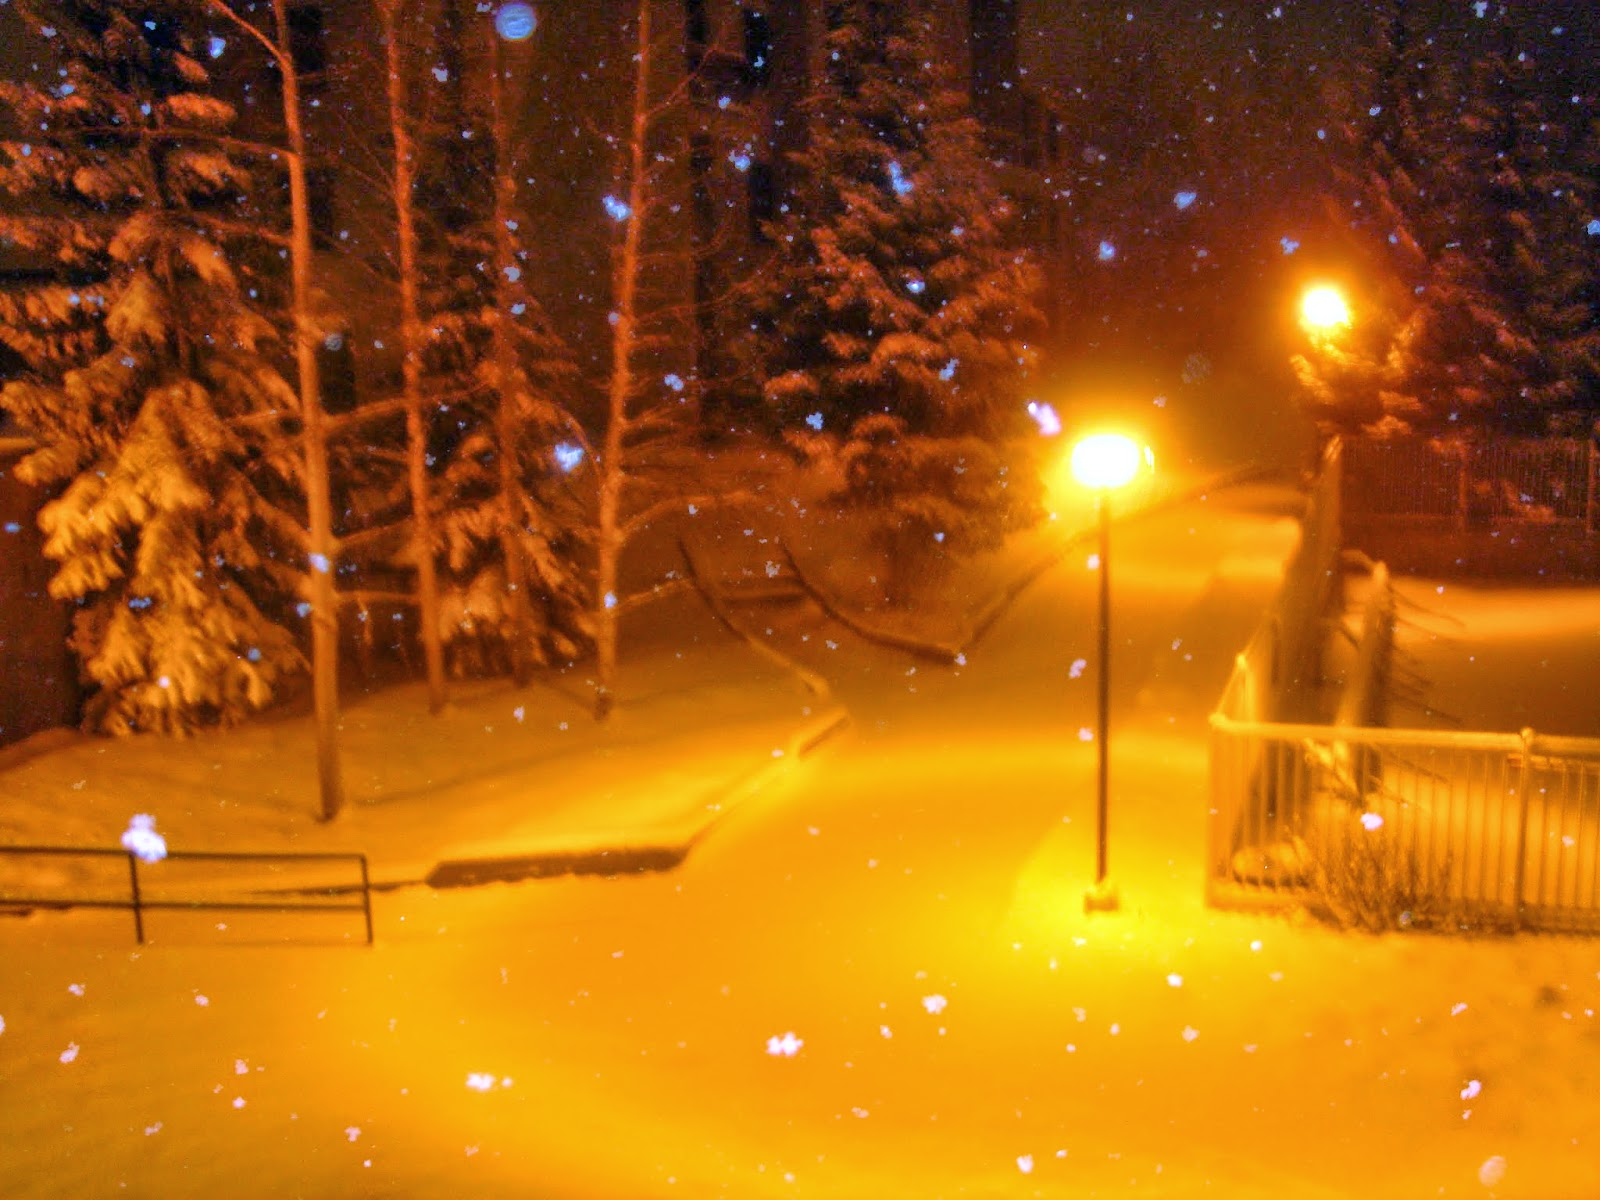 Snow Night Wallpaper Picture Gallery